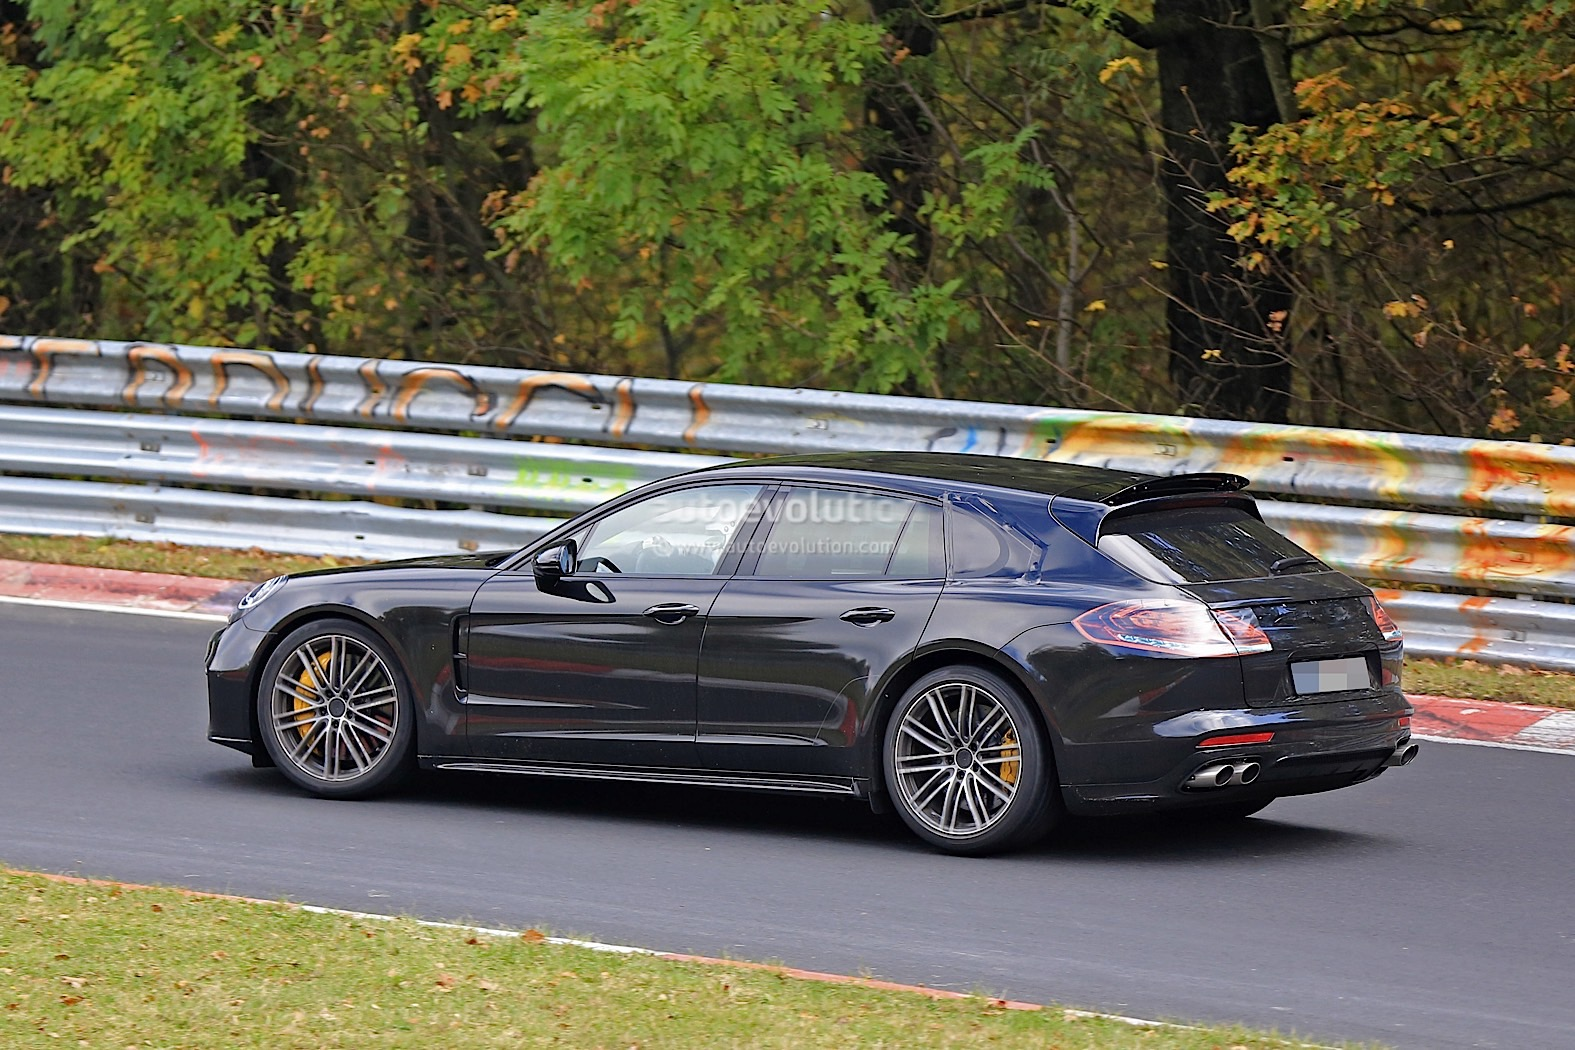 2018 Porsche Panamera Sport Turismo Wagon Spotted With Retractable Spoiler